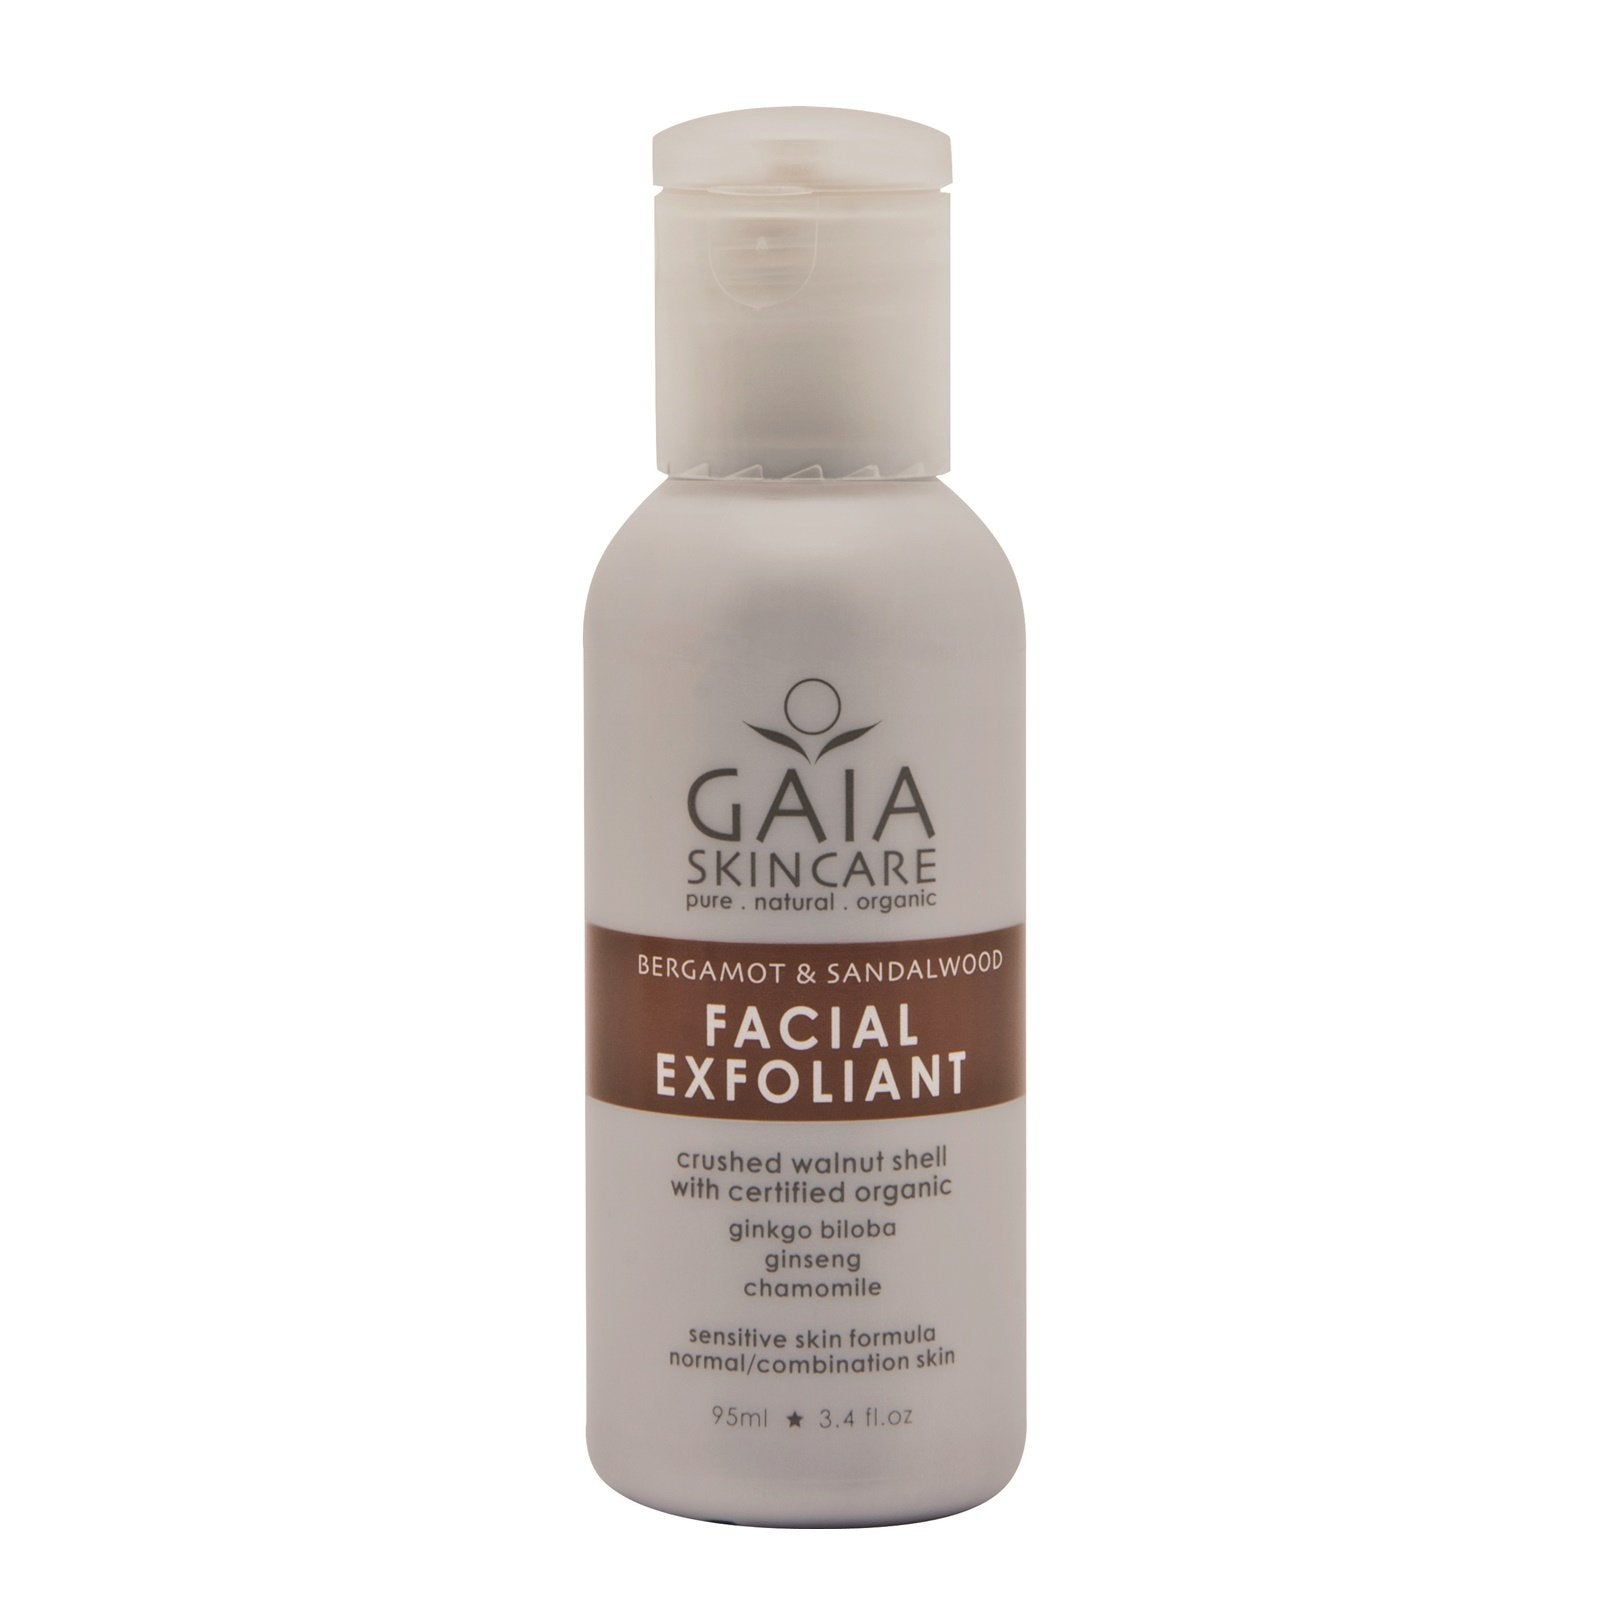 Gaia Facial Moisturiser - 95ml